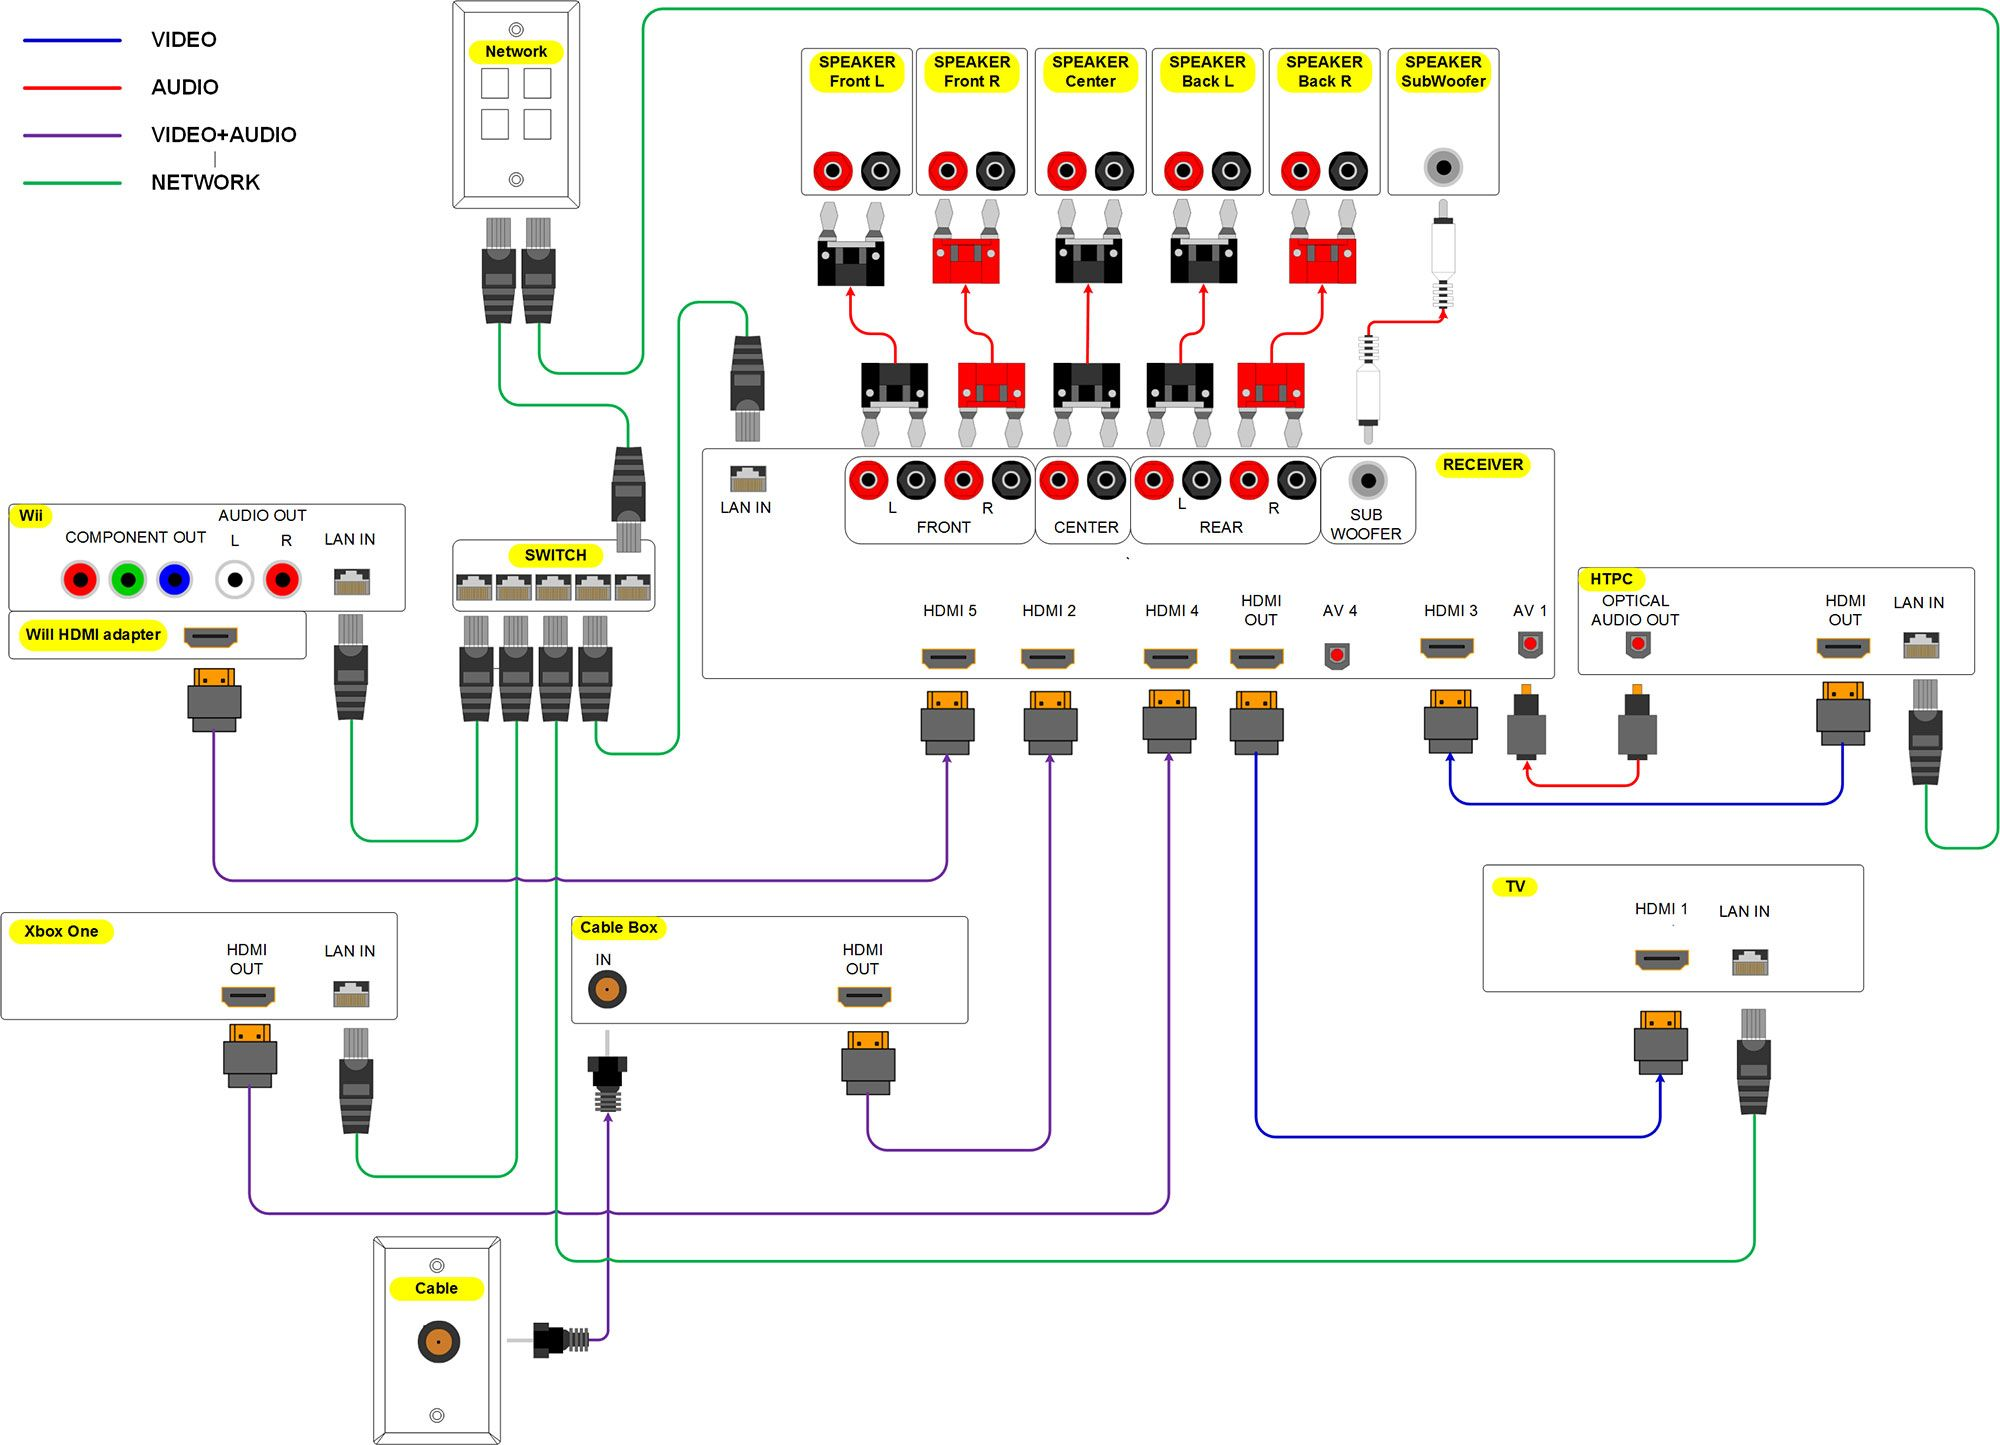 ae3ef715ed5d6ac384ec9c2b84075aef home theater wiring diagram (click it to see the big 2000 pixel home theater speaker wiring diagrams at creativeand.co